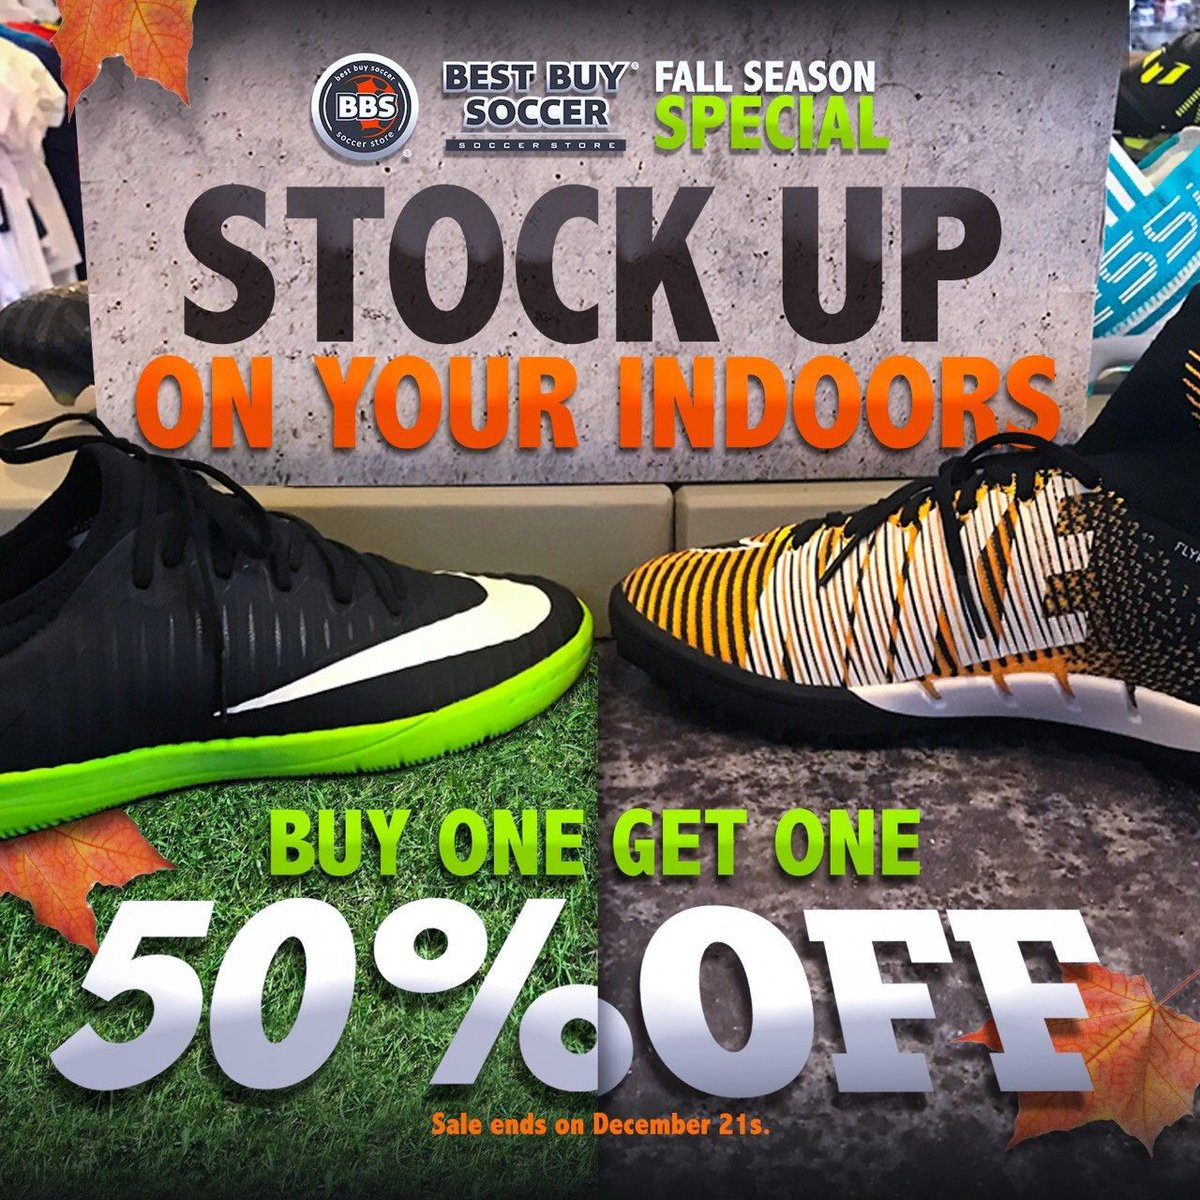 Buy one Get one 50 % OFF on ALL INDOORS. call us @ 704-544-7373 or visit us @ 11812 Carolina place parkway  #bestbuysoccer #bogo #soccer https://t.co/O2CvsXsY5f